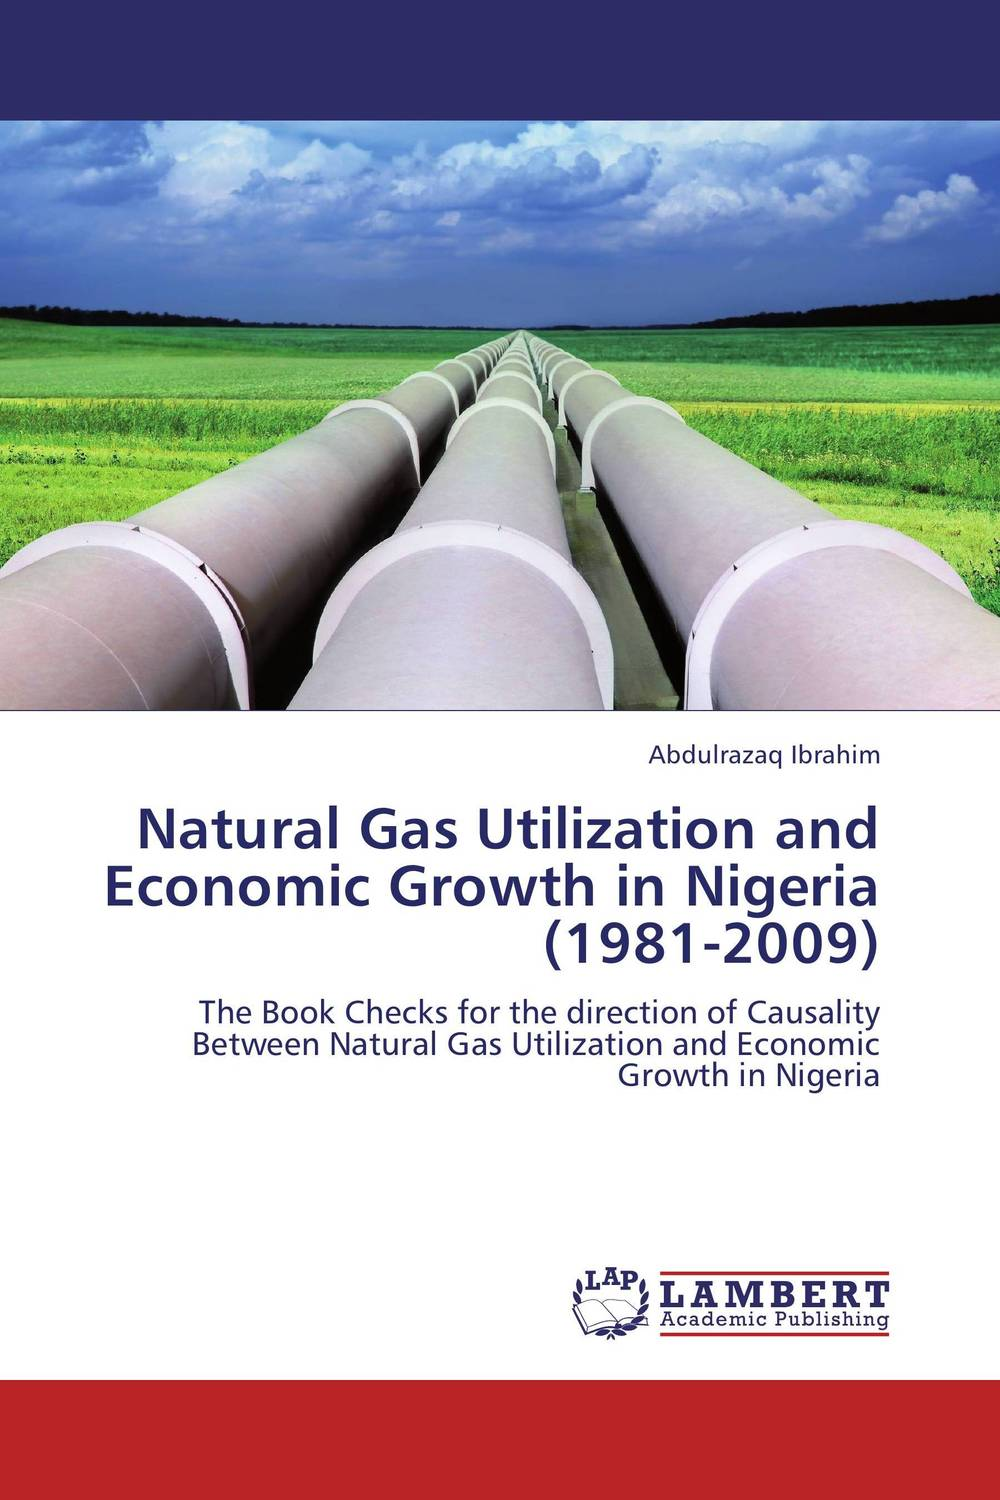 Natural Gas Utilization and Economic Growth in Nigeria (1981-2009) economic growth in nigeria